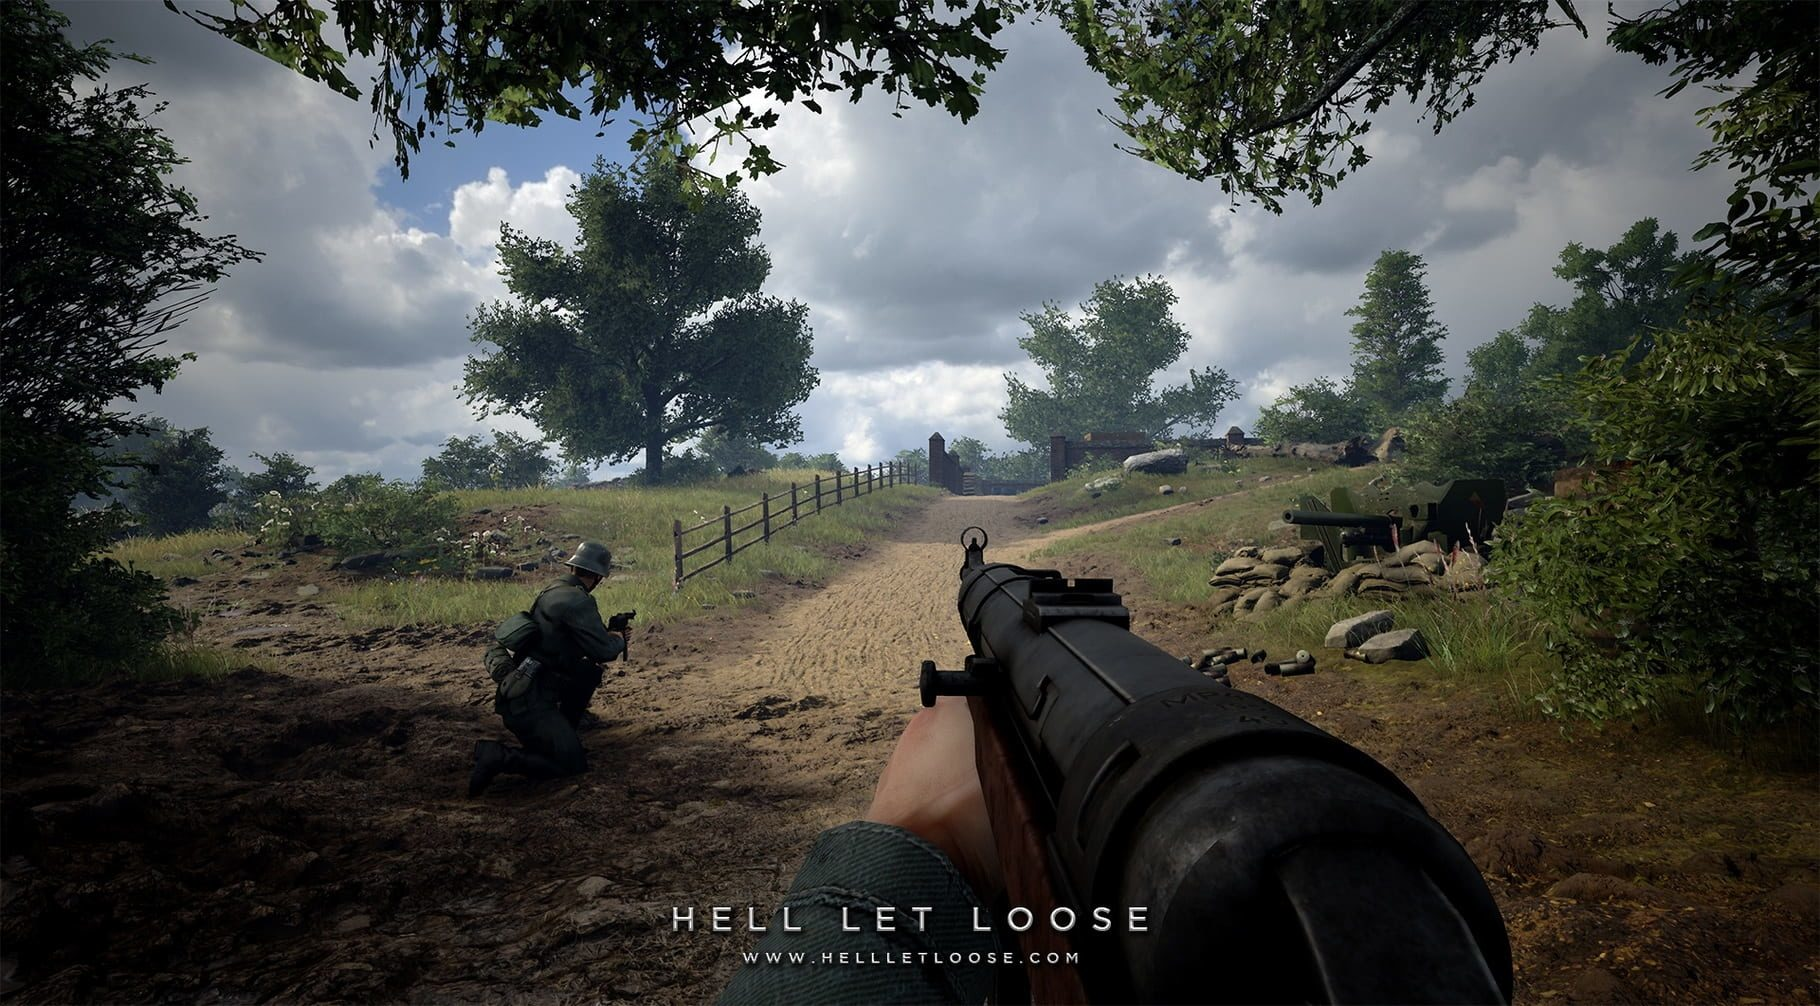 Hell Let Loose – Anteprima | Seconda Guerra Mondiale, in 100